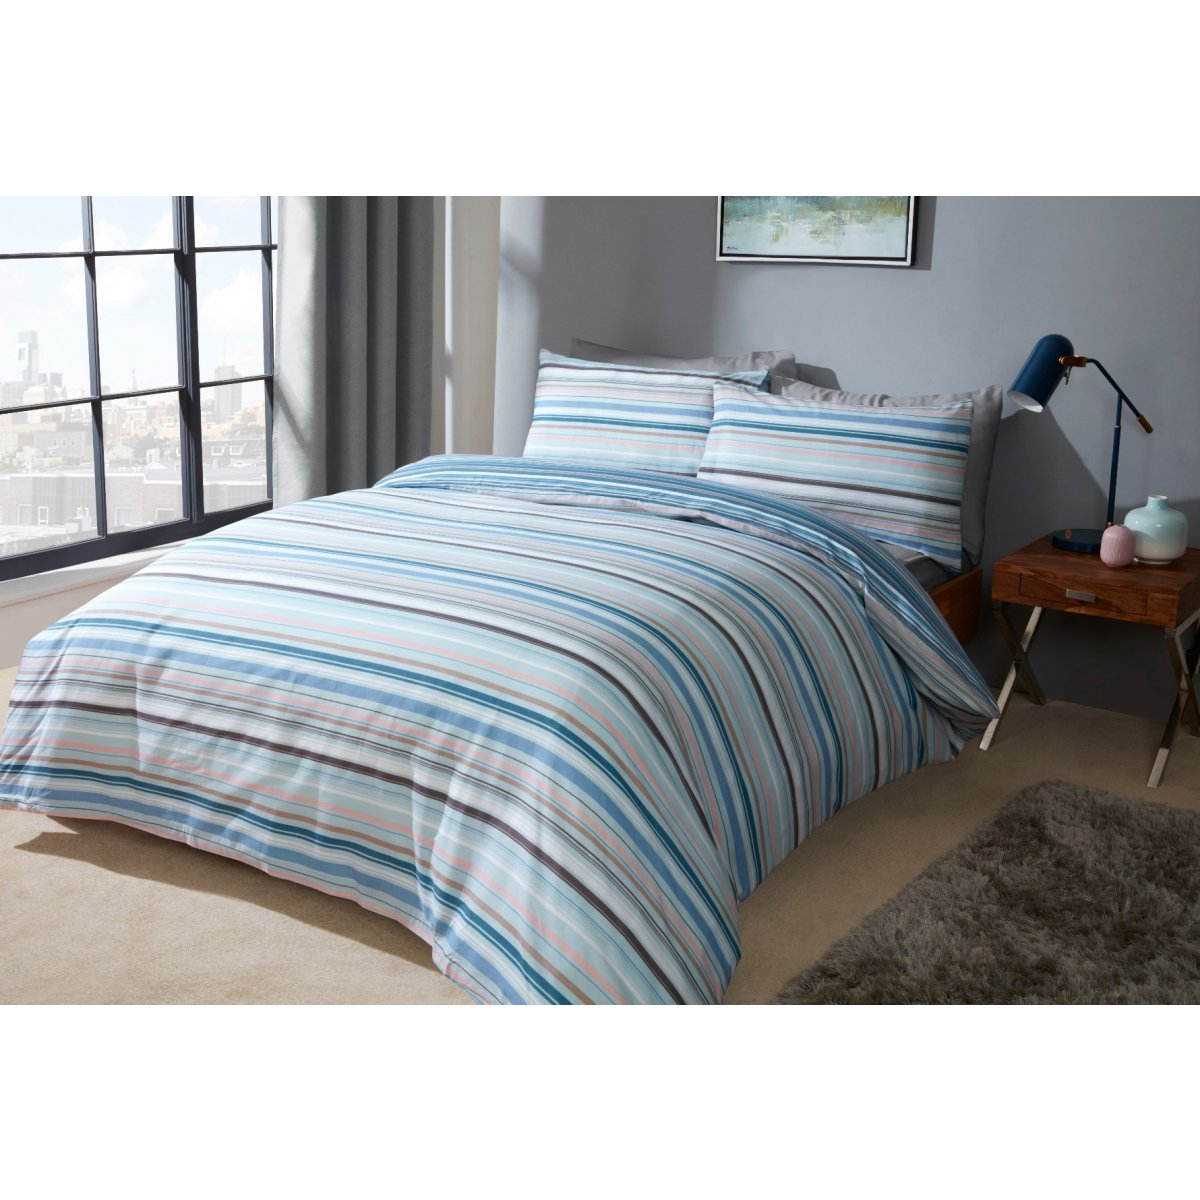 Ombre Stripe Blue Bedding - Reversible Duvet Cover and Pillowcase Set